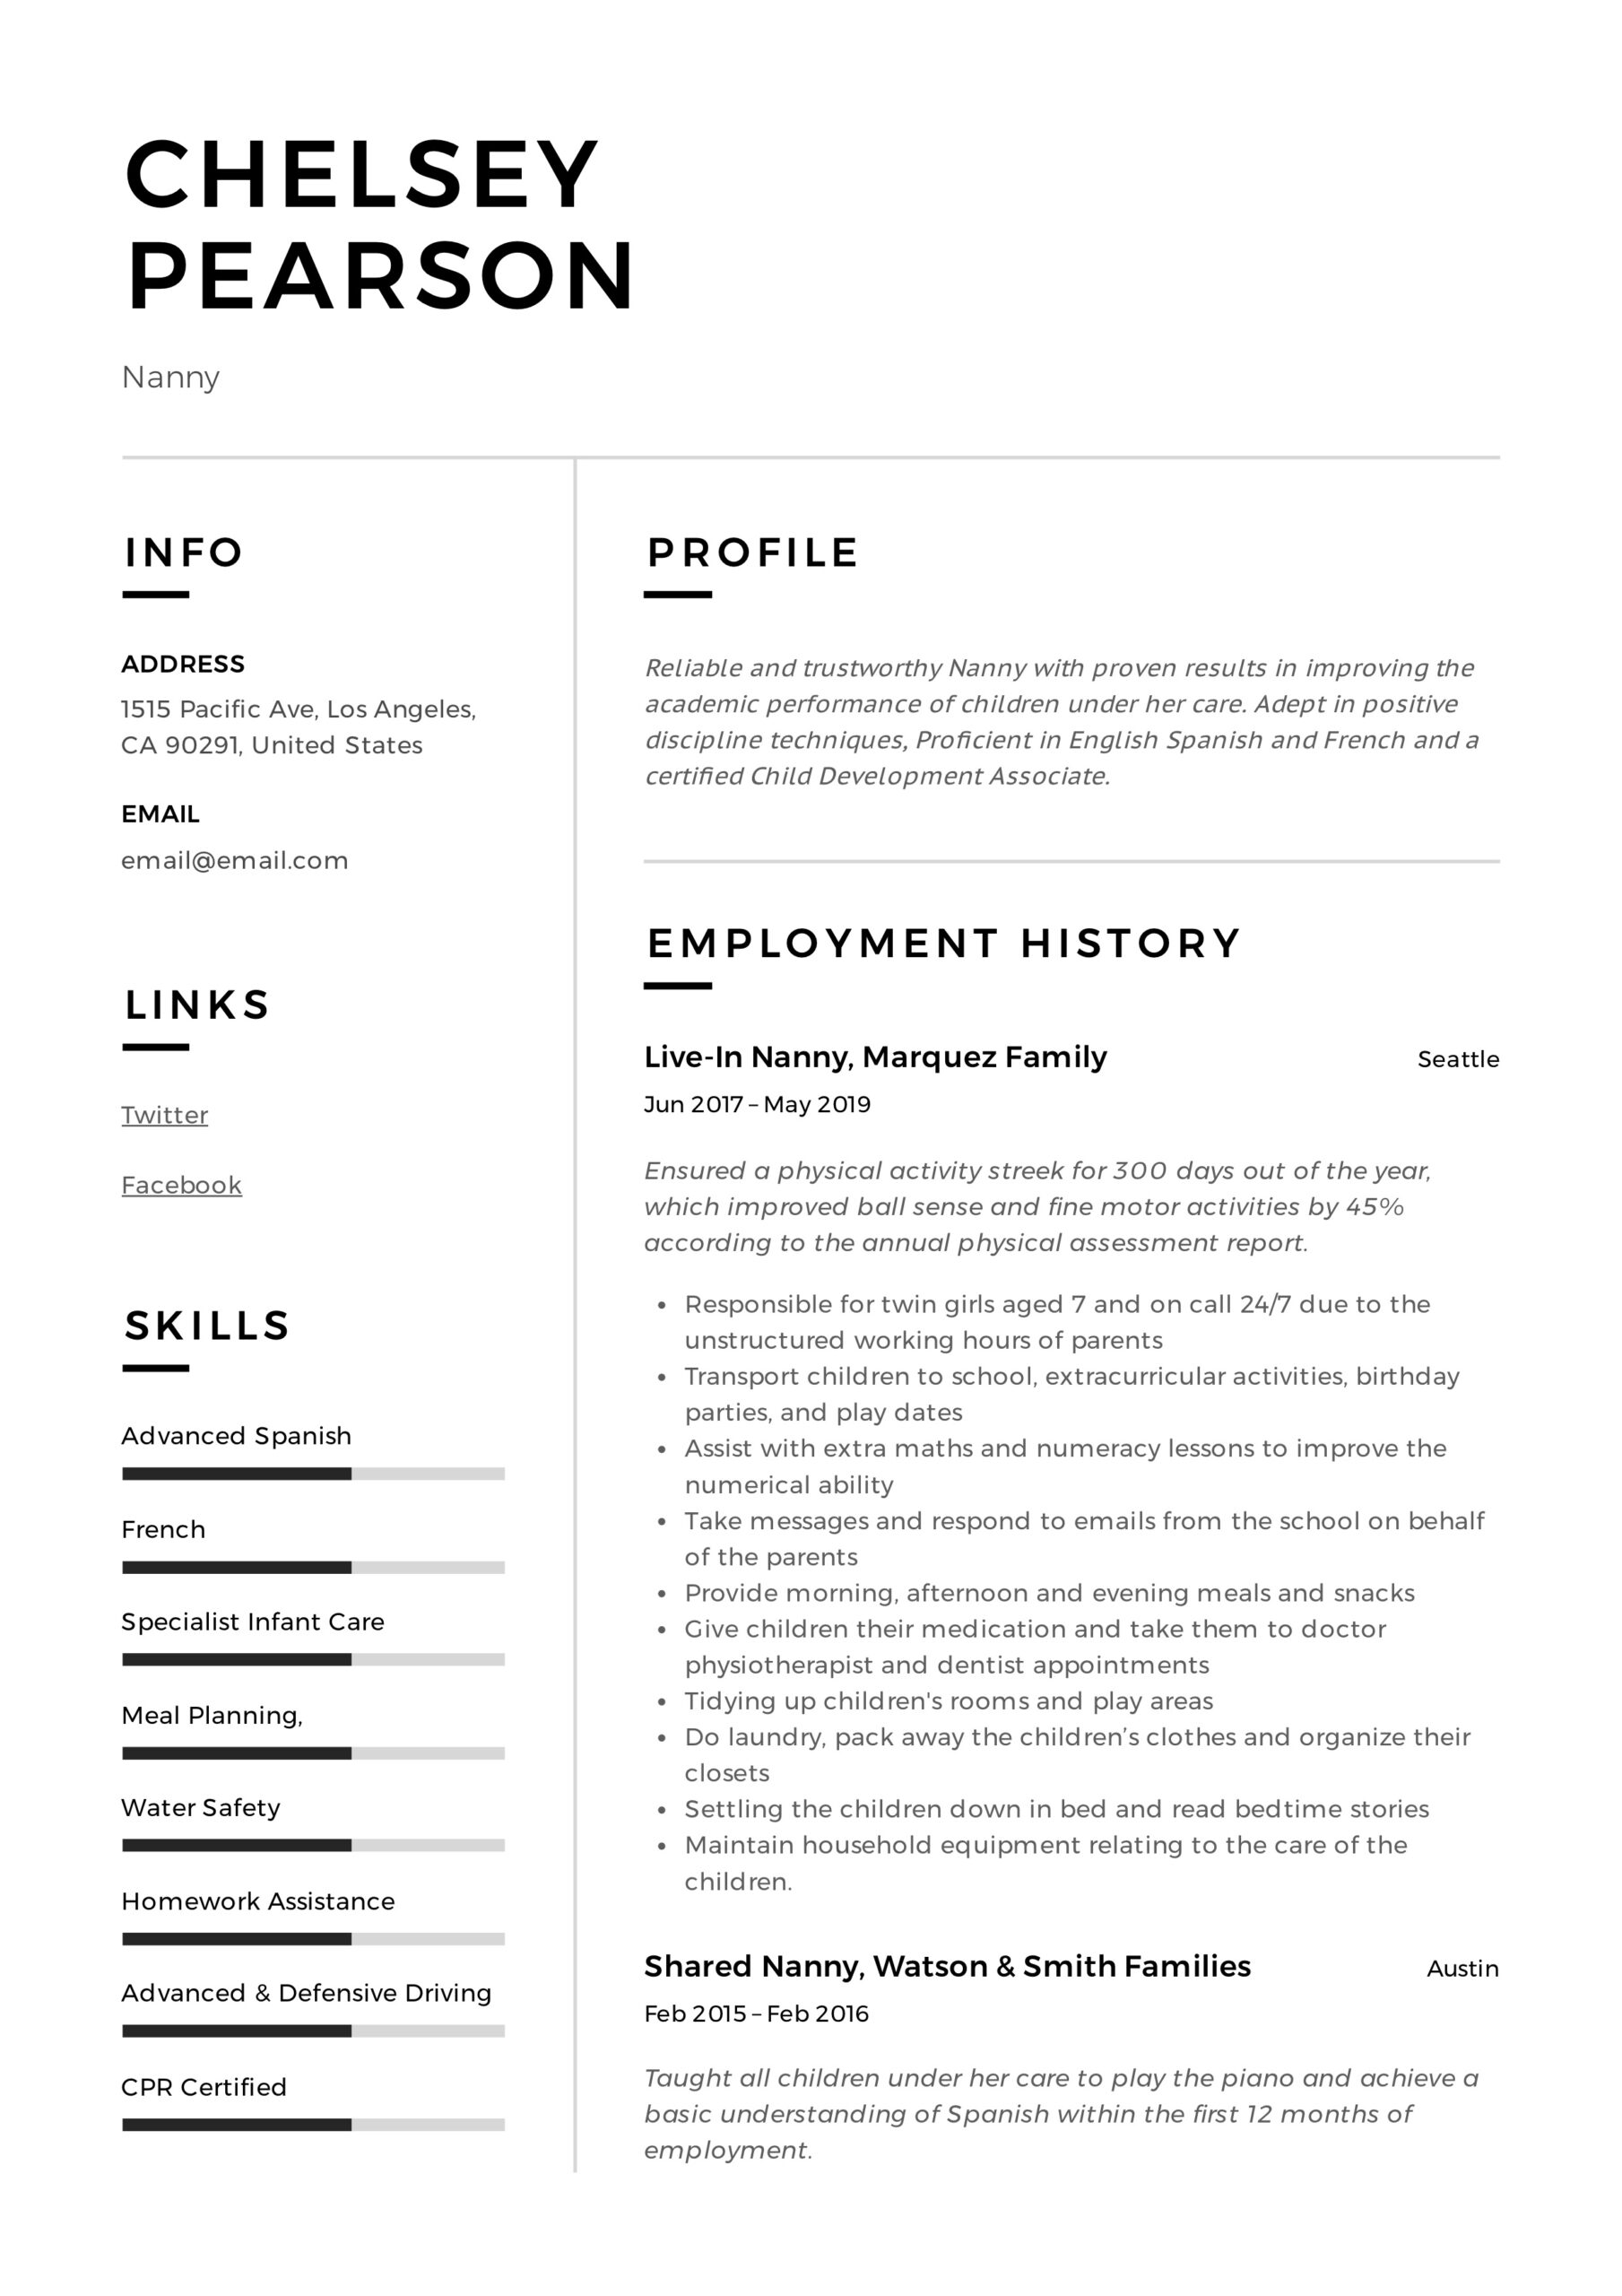 nanny resume writing guide template samples pdf professional examples benefits manager Resume Professional Nanny Resume Examples